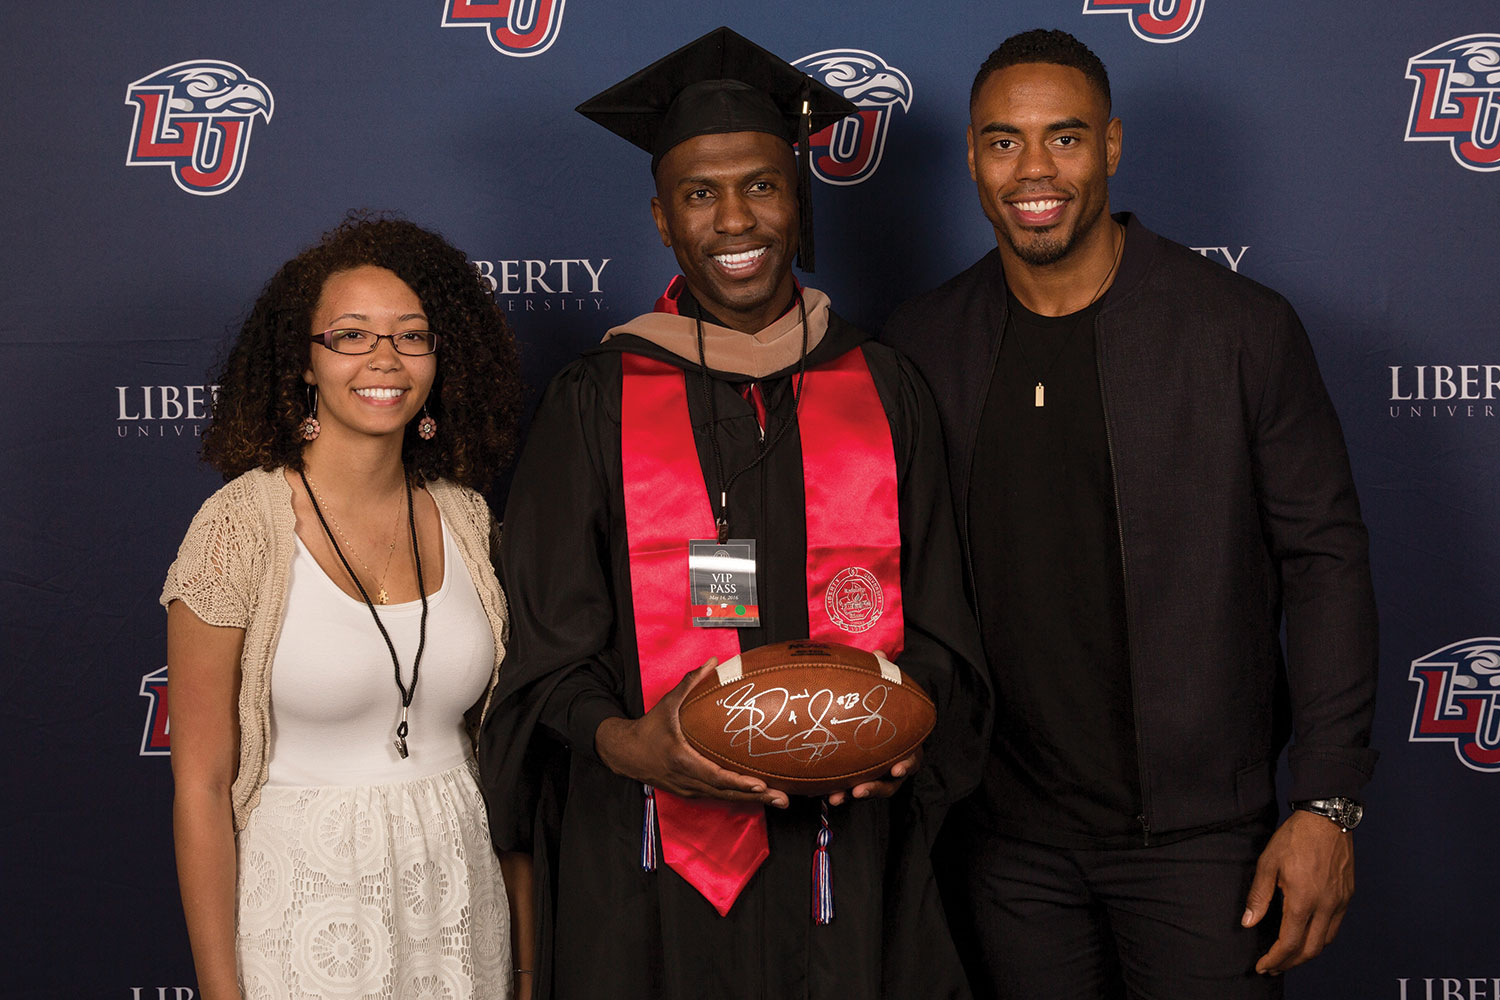 One lucky graduate caught the football thrown by speaker Rashad Jennings of the New York Giants.